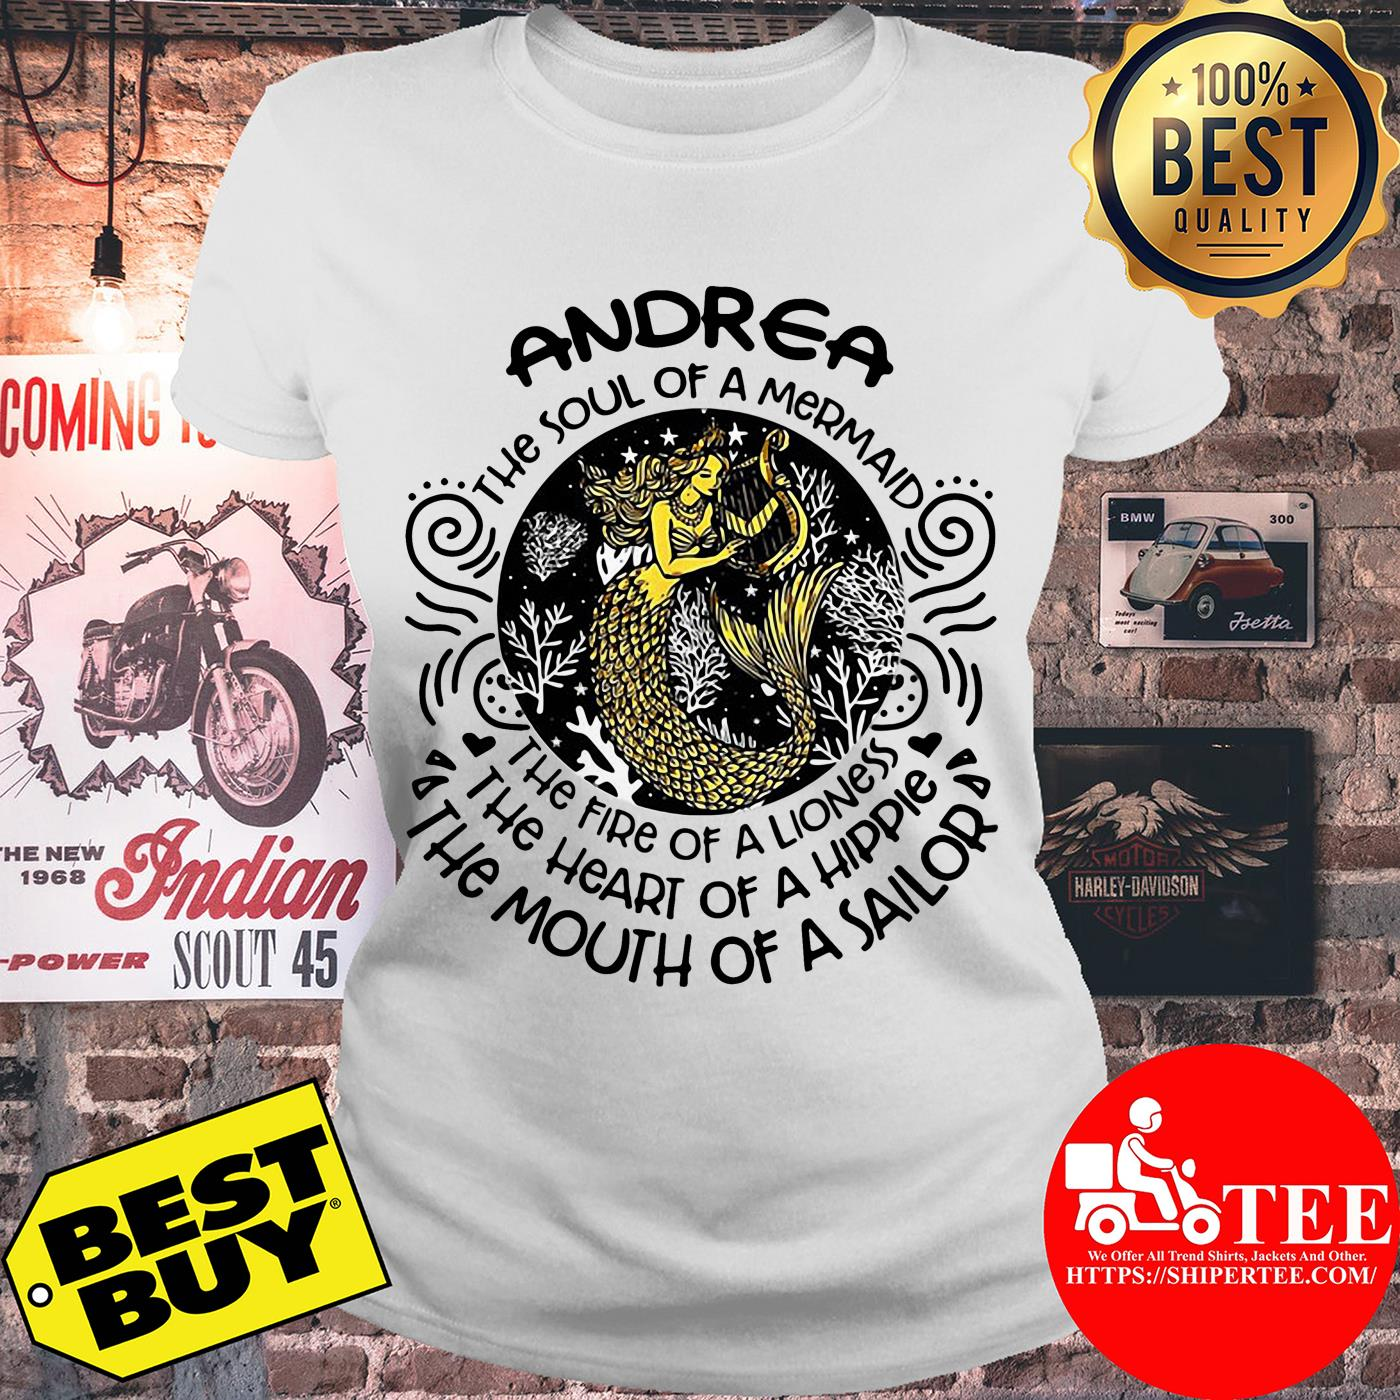 Andrea the soul of mermaid the fire of a lioness ladies tee